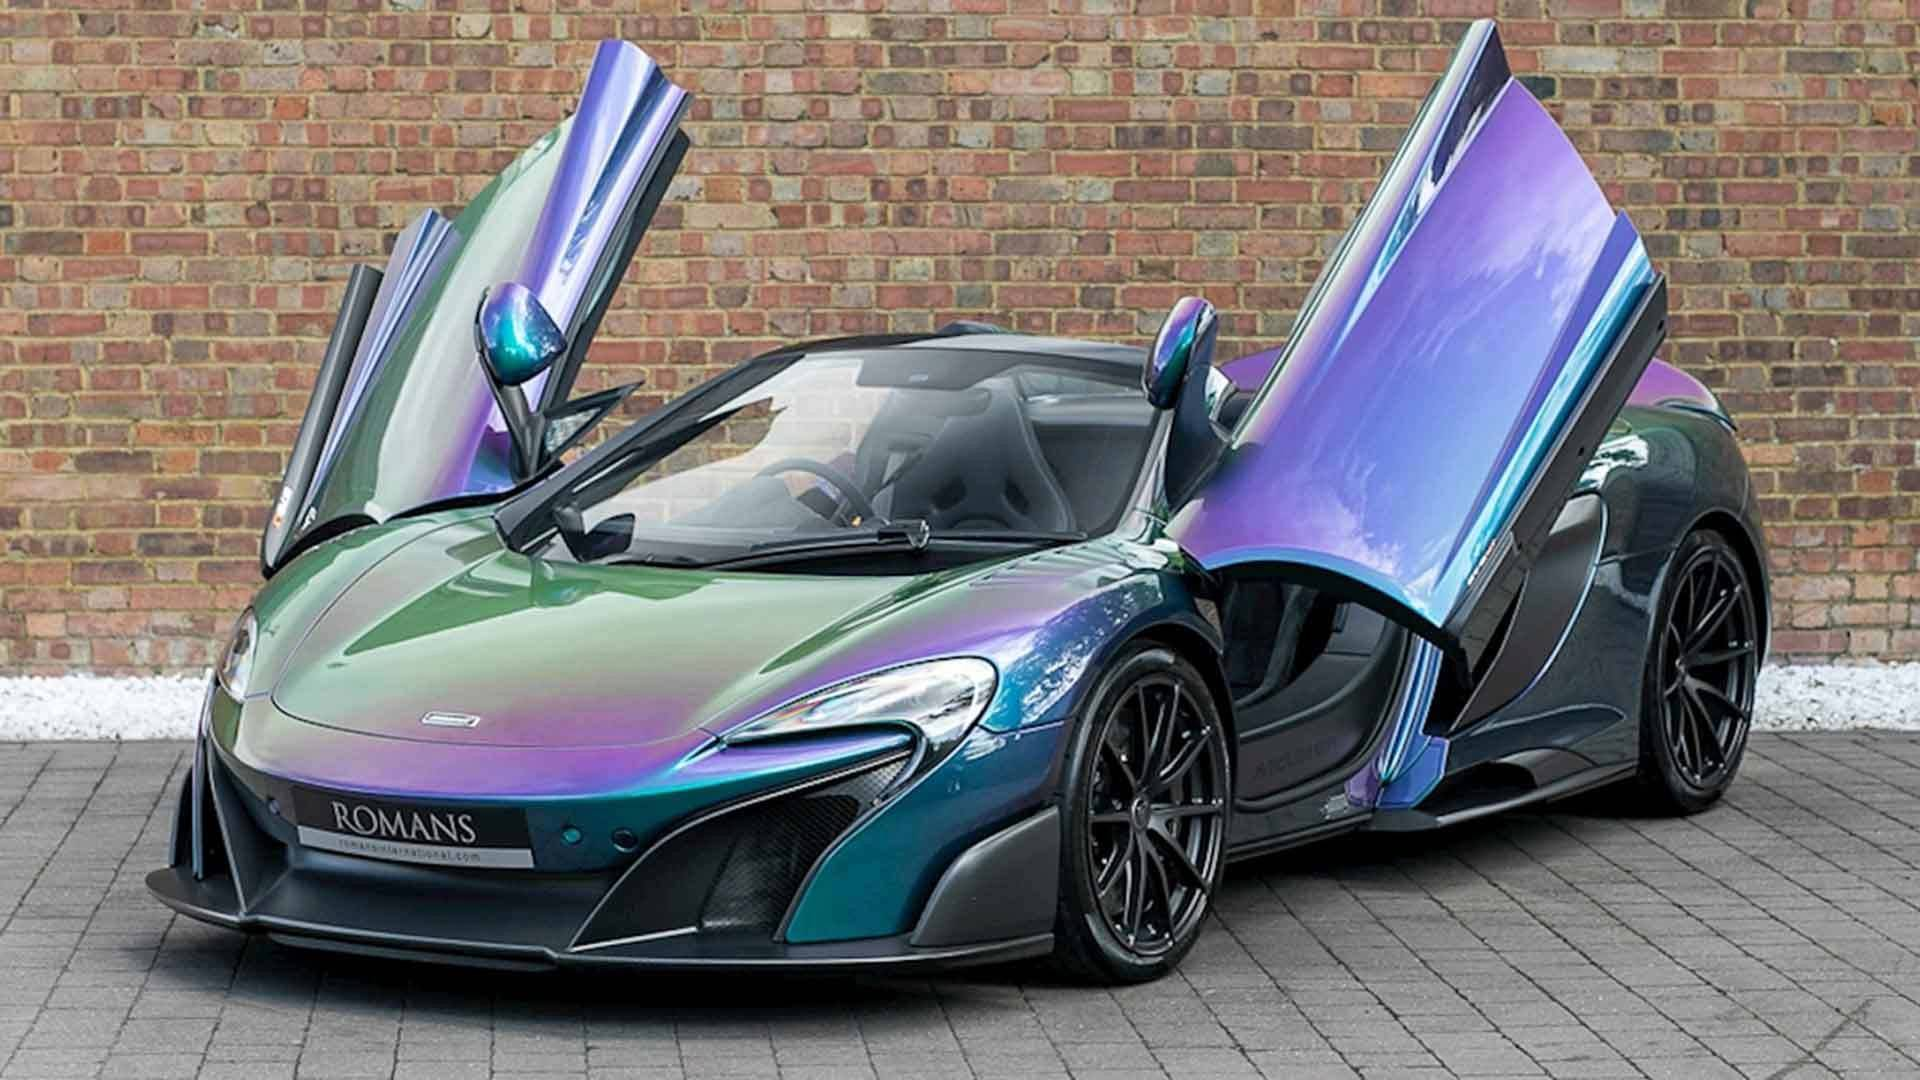 How Much Does It Cost To Paint A Car >> The Paint On This Mclaren 675lt Cost More Than A New Civic Type R